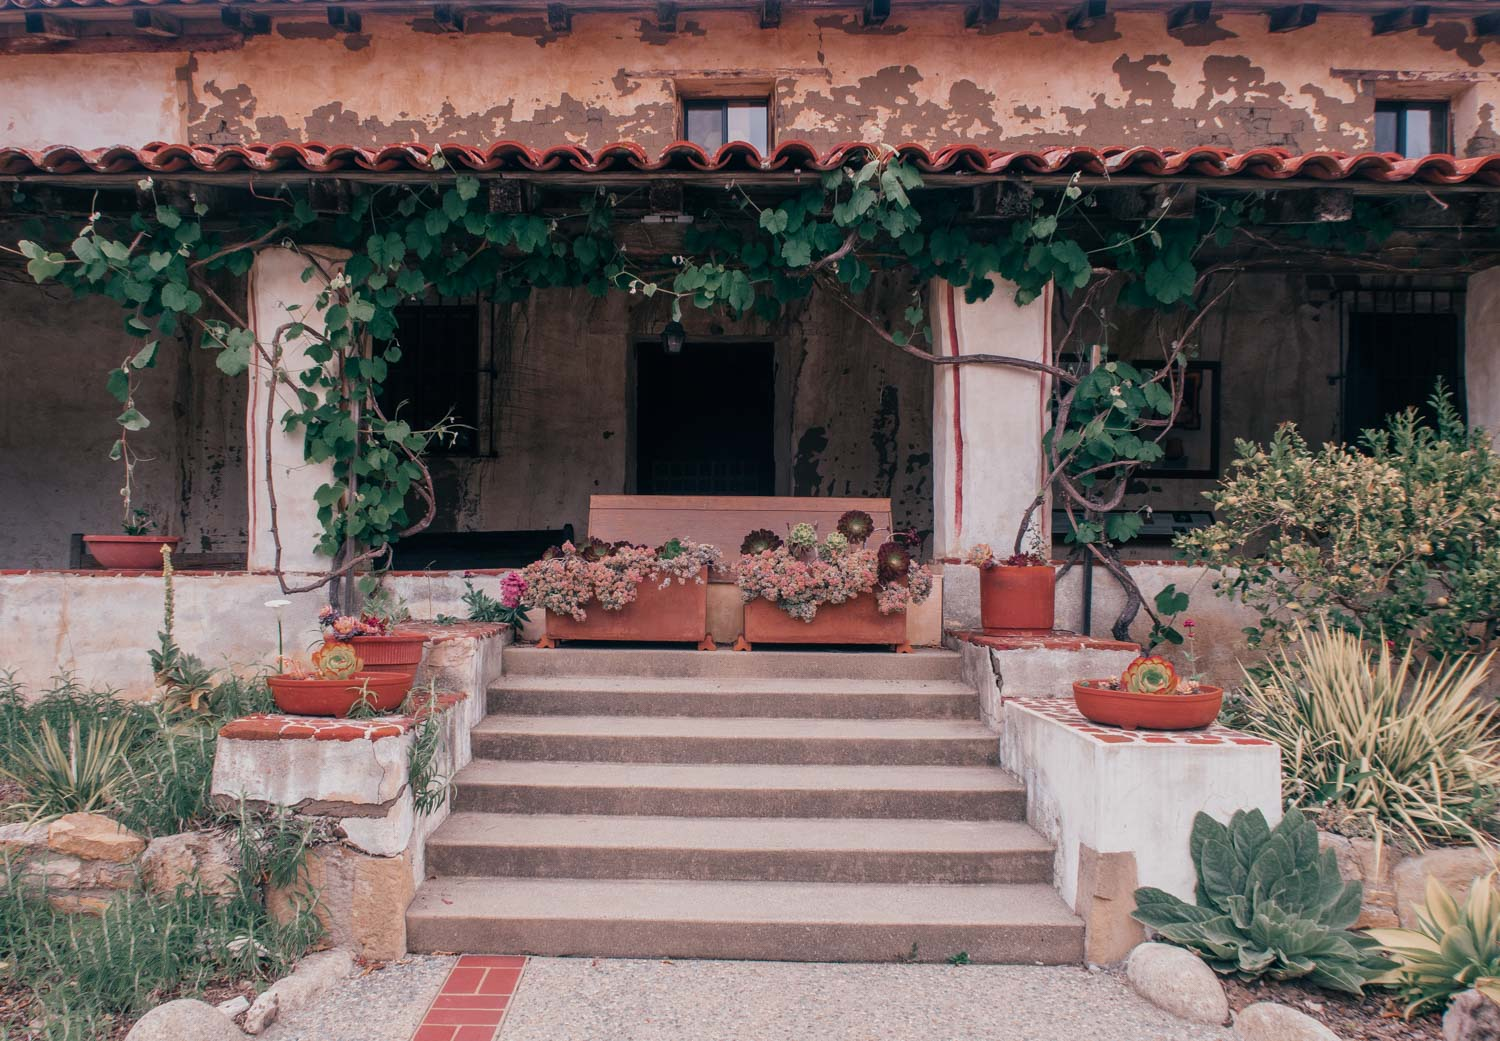 Fashion Blogger Elizabeth Hugen of Lizzie in Lace shares what to do in Carmel by-the-sea including exploring the Carmel Mission